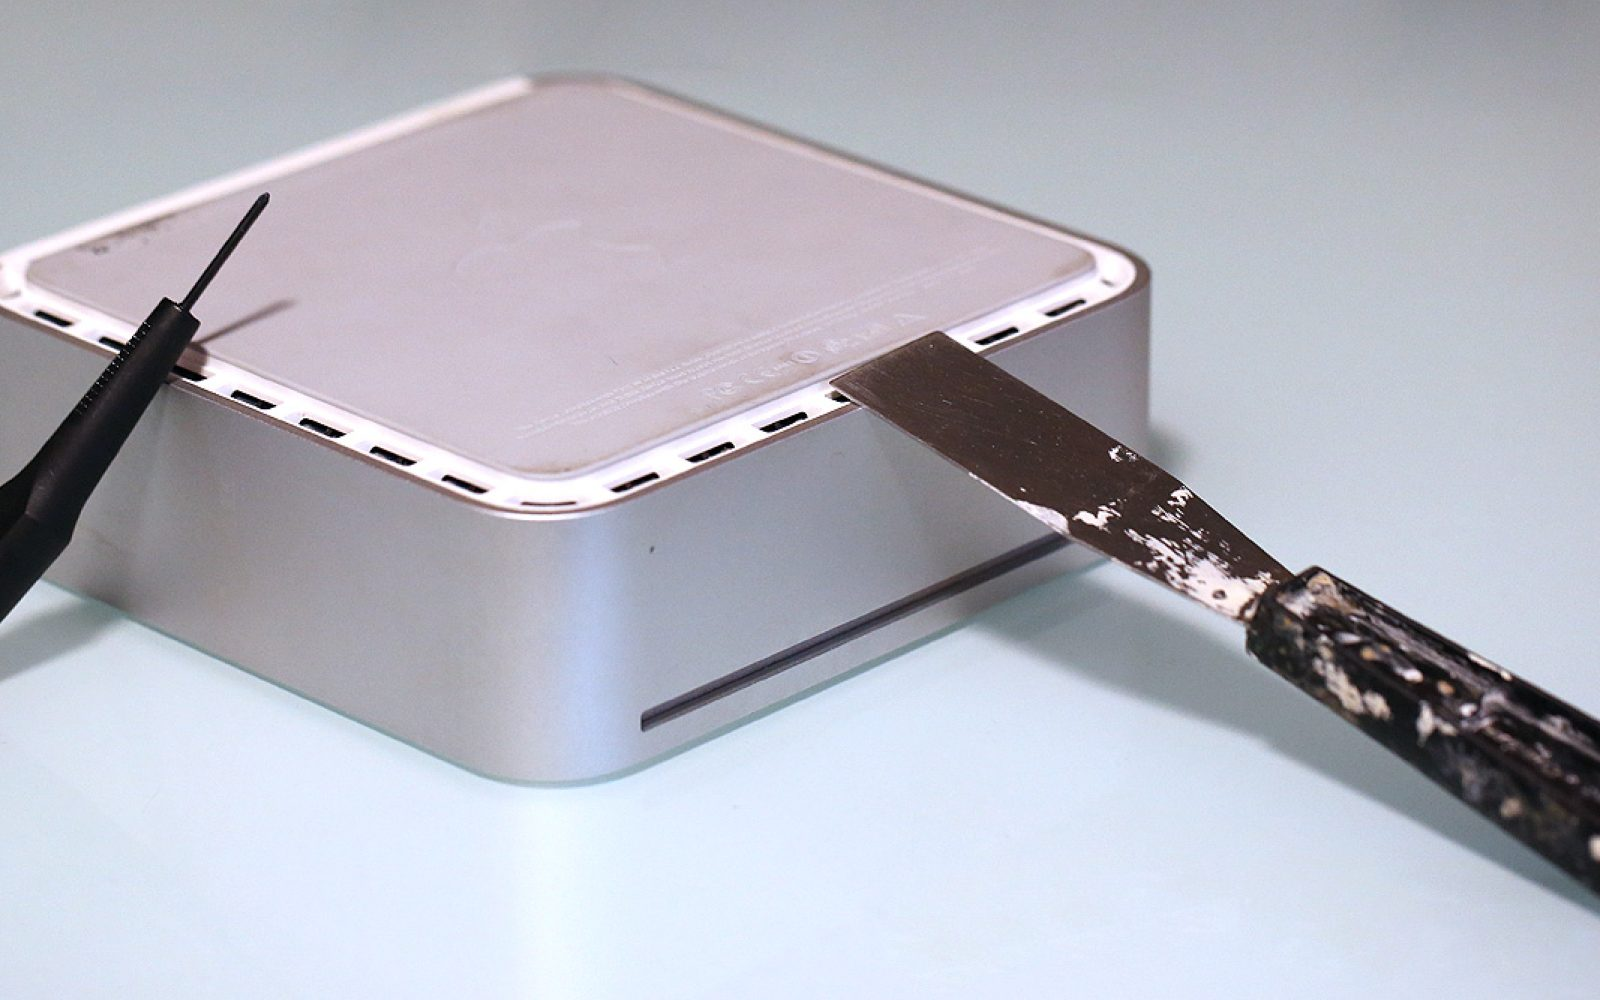 How-To: Swap Your iMac, Mac mini or MacBook CD/DVD drive for a super-fast SSD